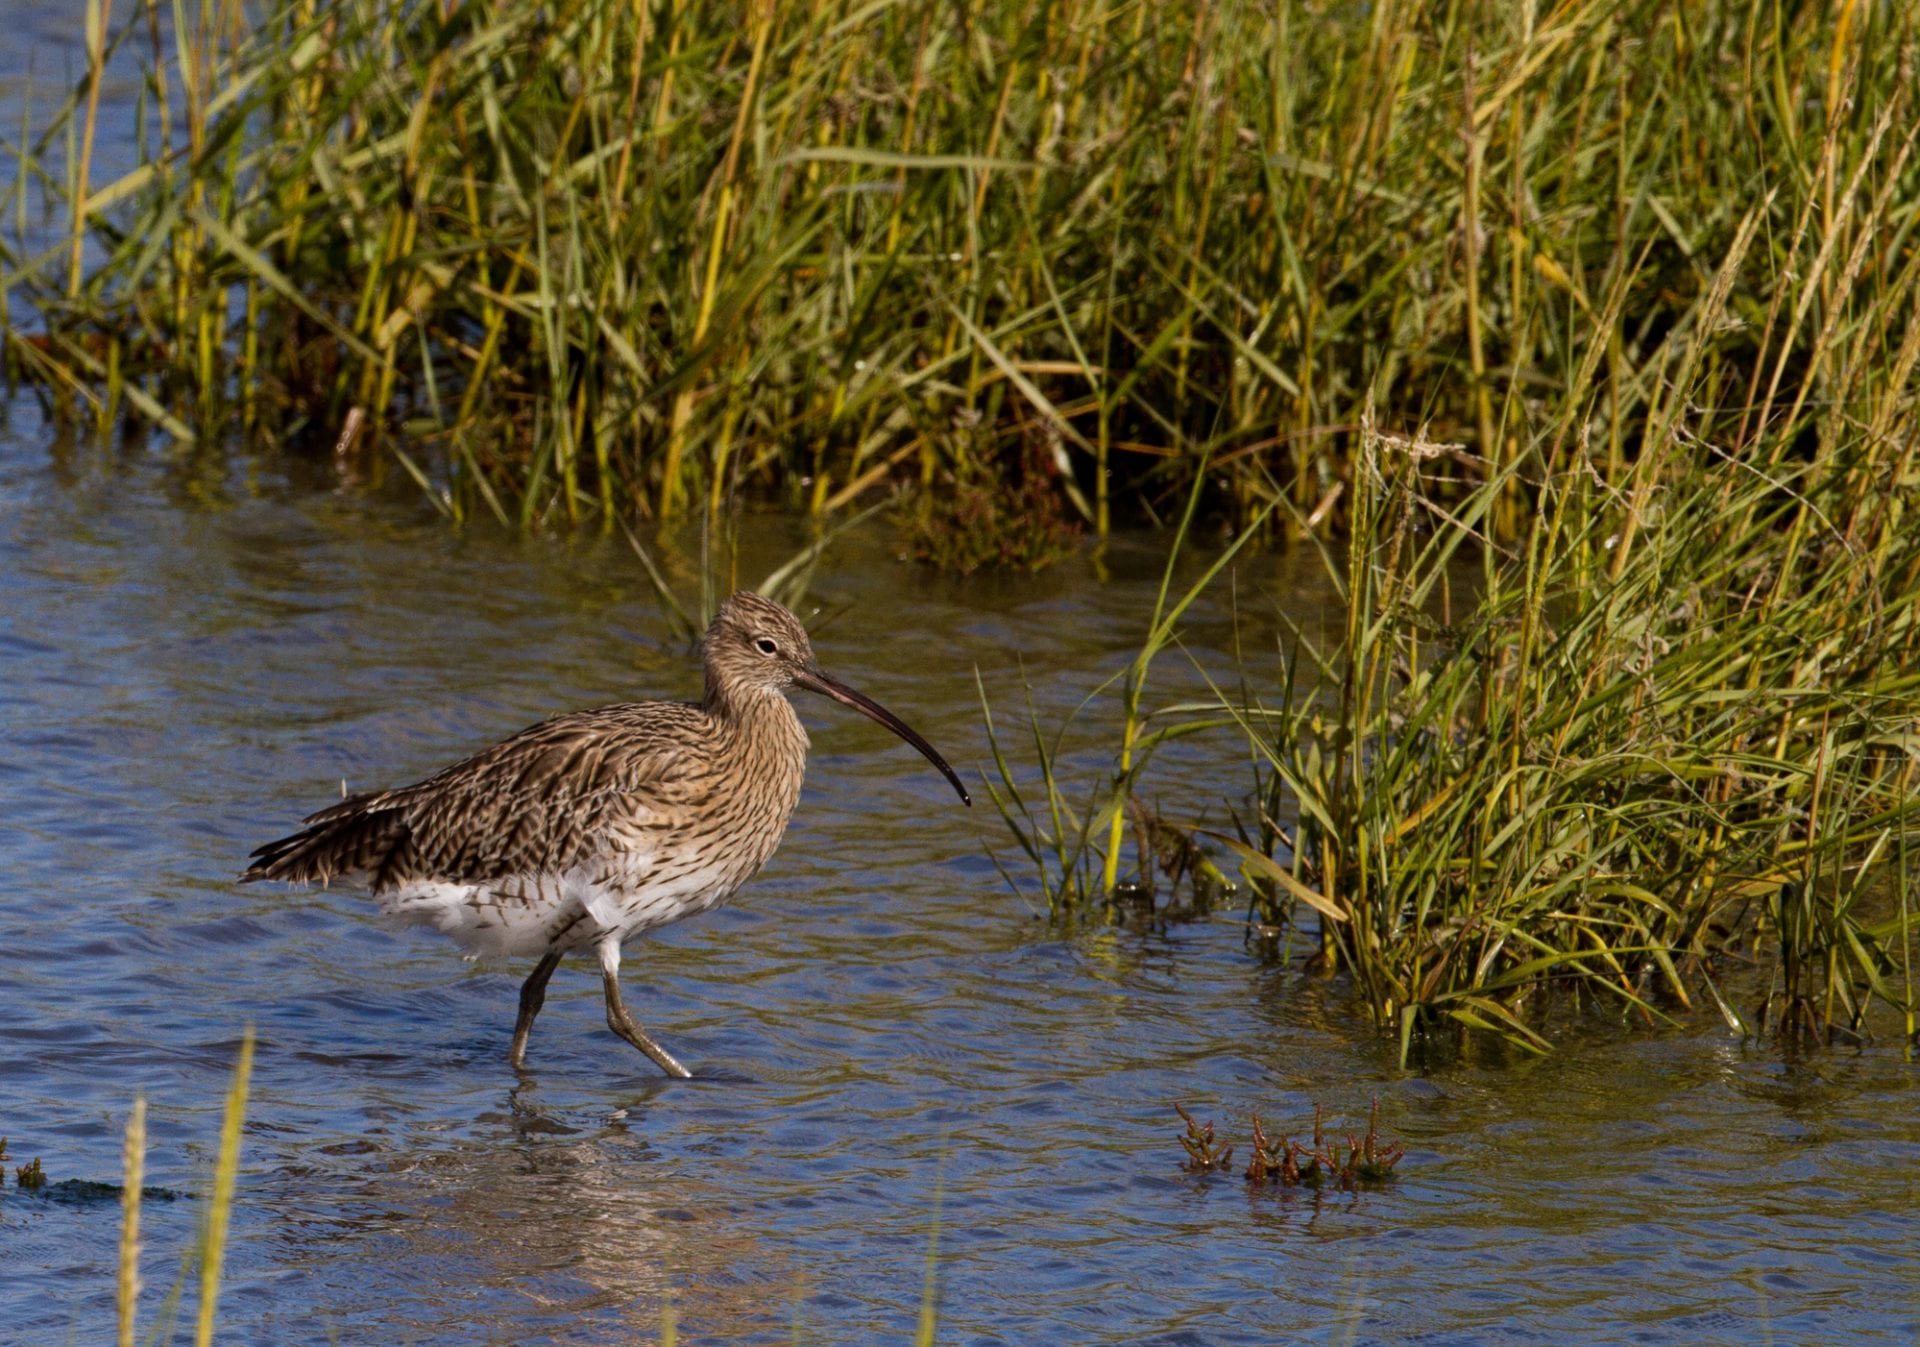 curlew-wading-towards-reed-grasses